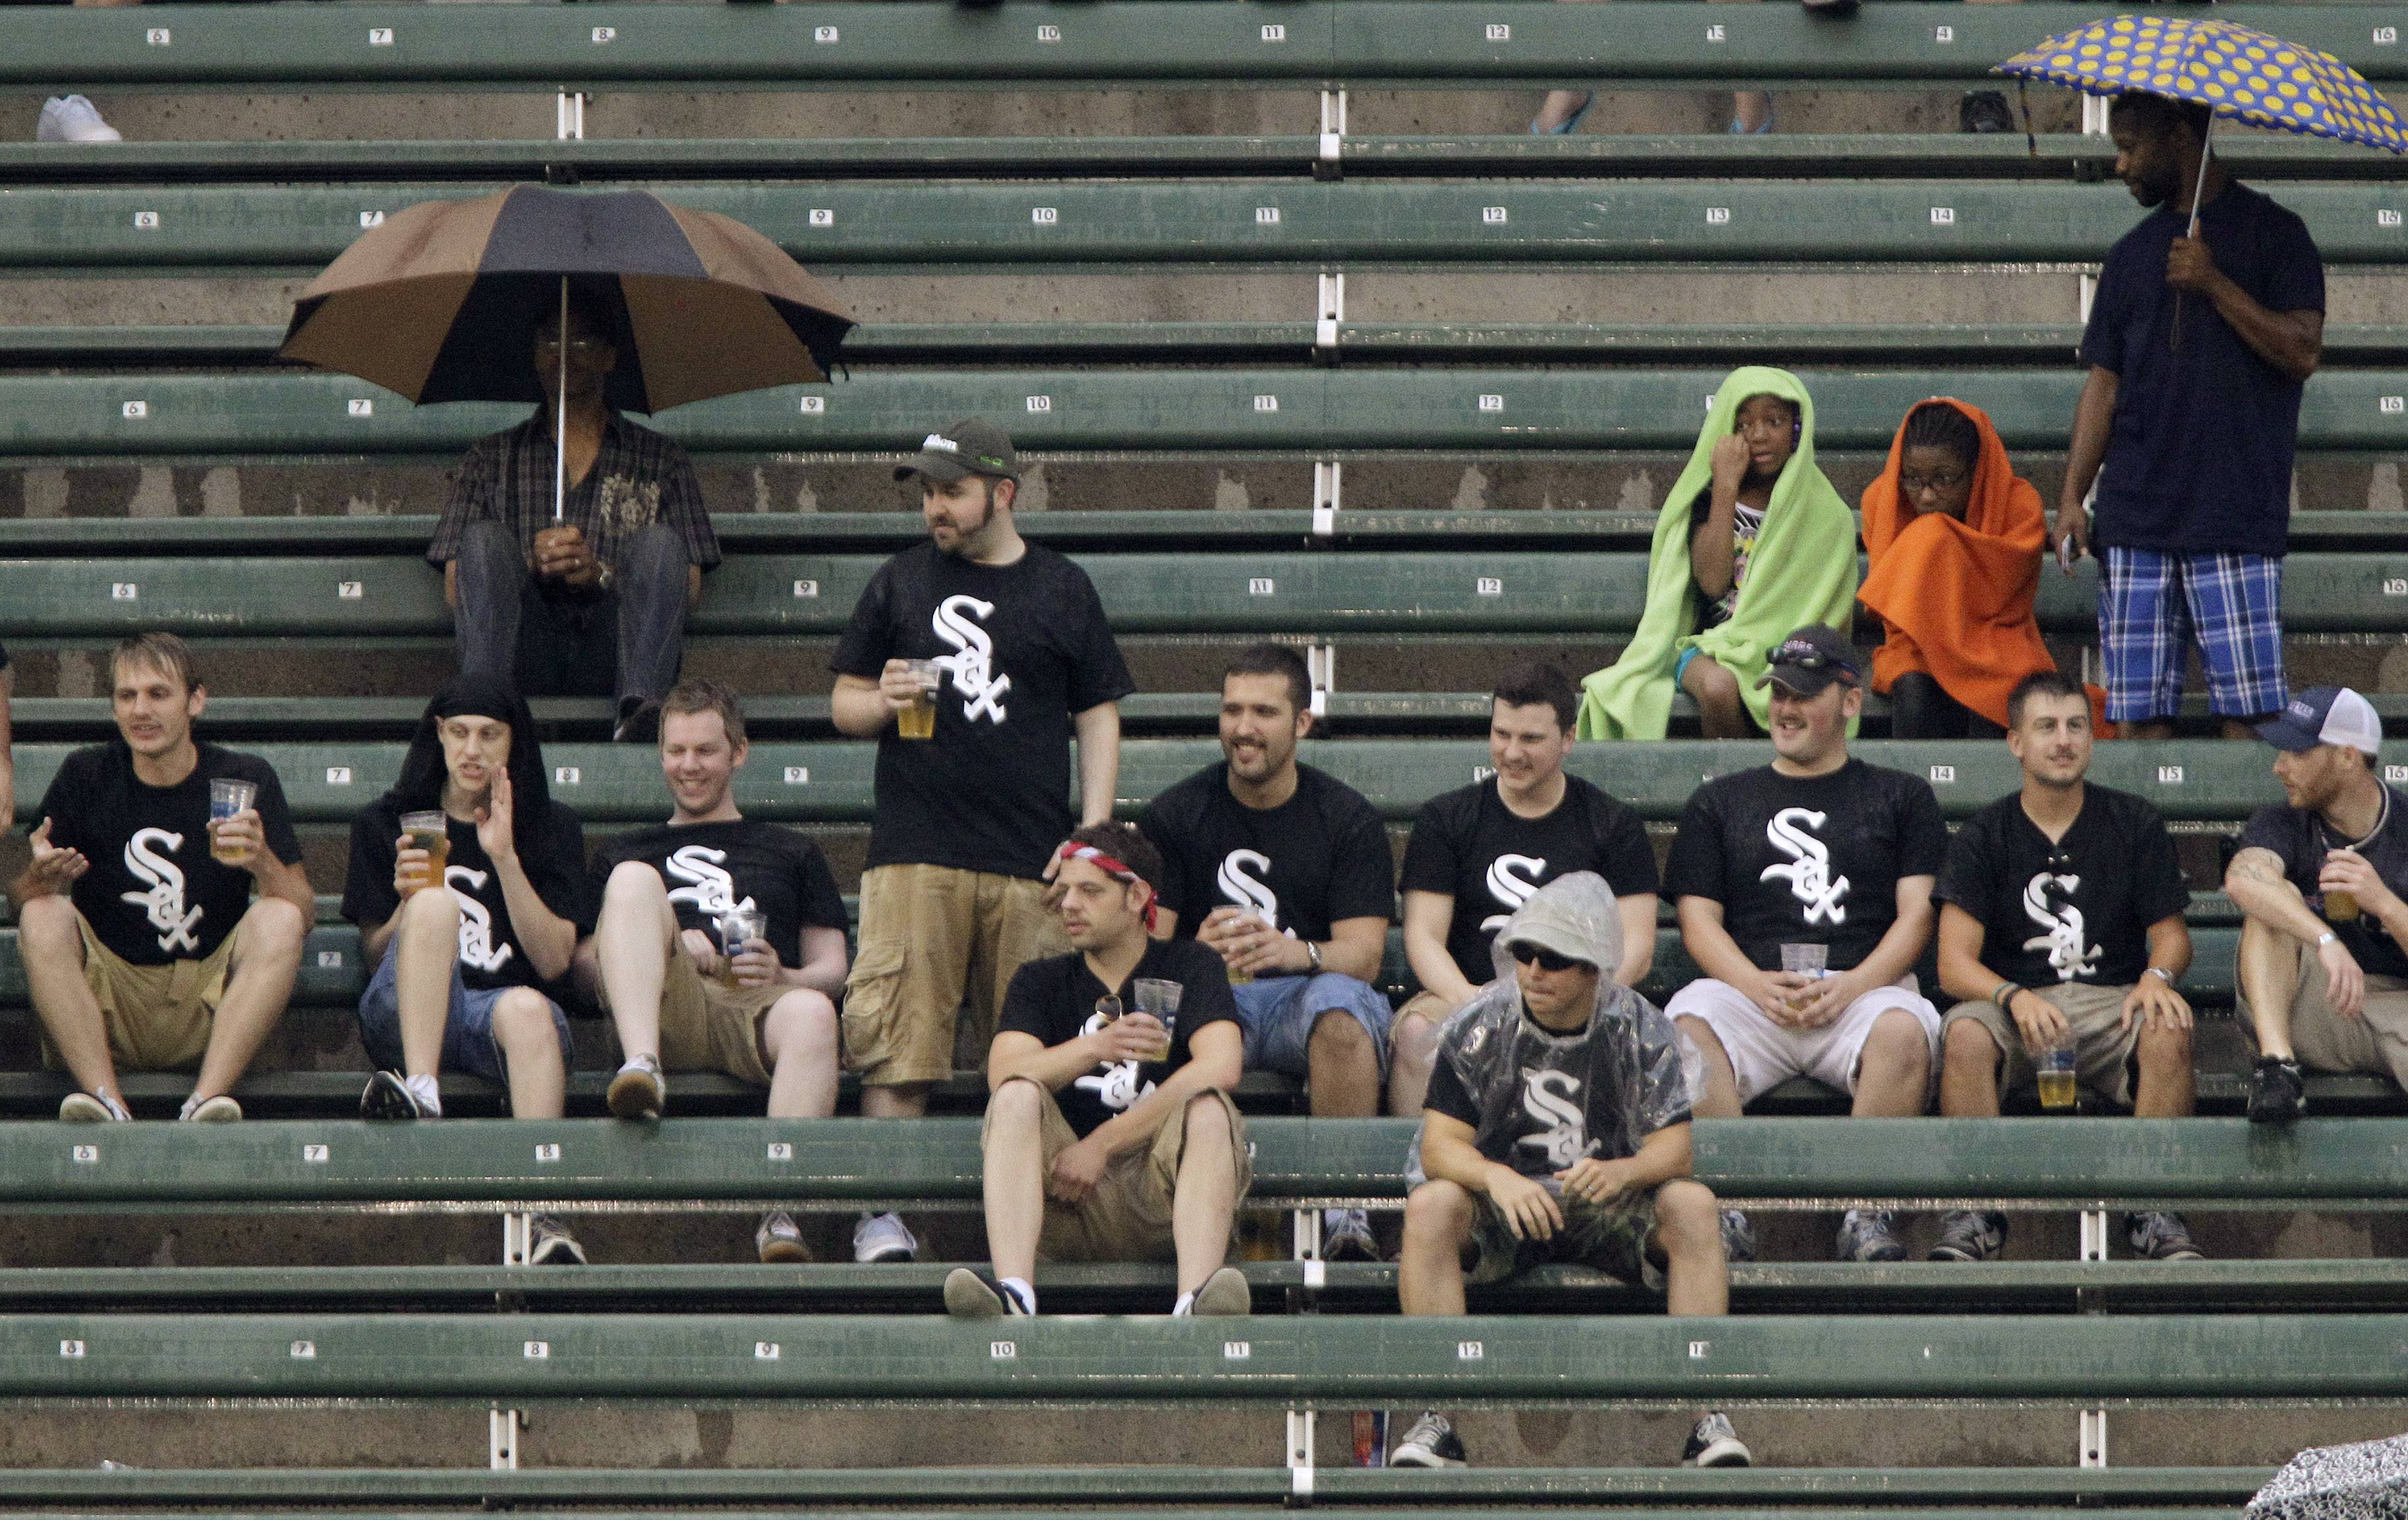 Fans wait out a rain delay before the start of a baseball game between the Cleveland Indians and the Chicago White Sox Saturday